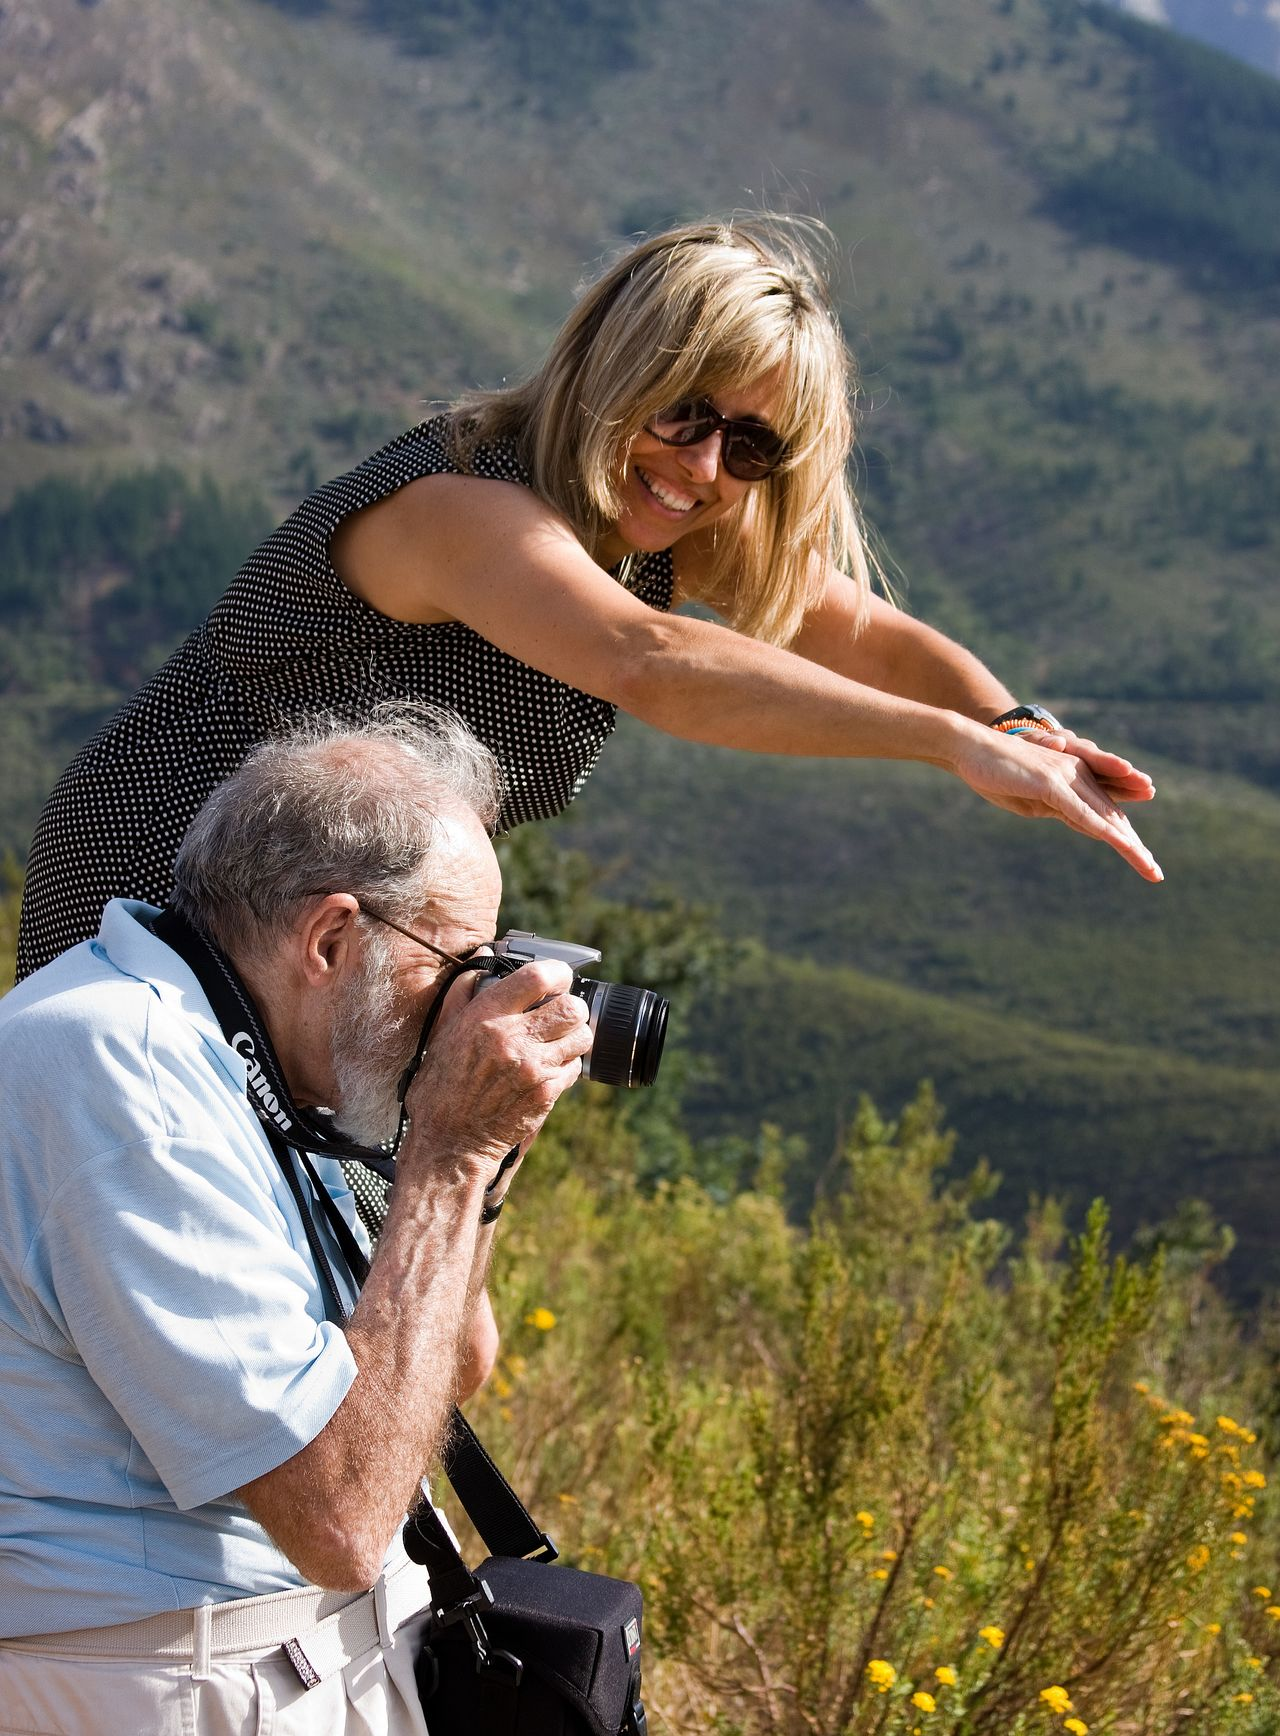 The Portraitist - Two For The Price Of One ~ Adult Adults Only Adventure Buddies Adventures Blond Hair Casual Clothing Never Too Old  Father And Daughter Fatherhood Moments Happy Happy Time Helping Hand Men Mountain Nature Outdoors Senior Adult Photographer In The Shot Portraitist Real People Sharing  Standing The Portraitist - 2017 EyeEm Awards Travel Companion Two People